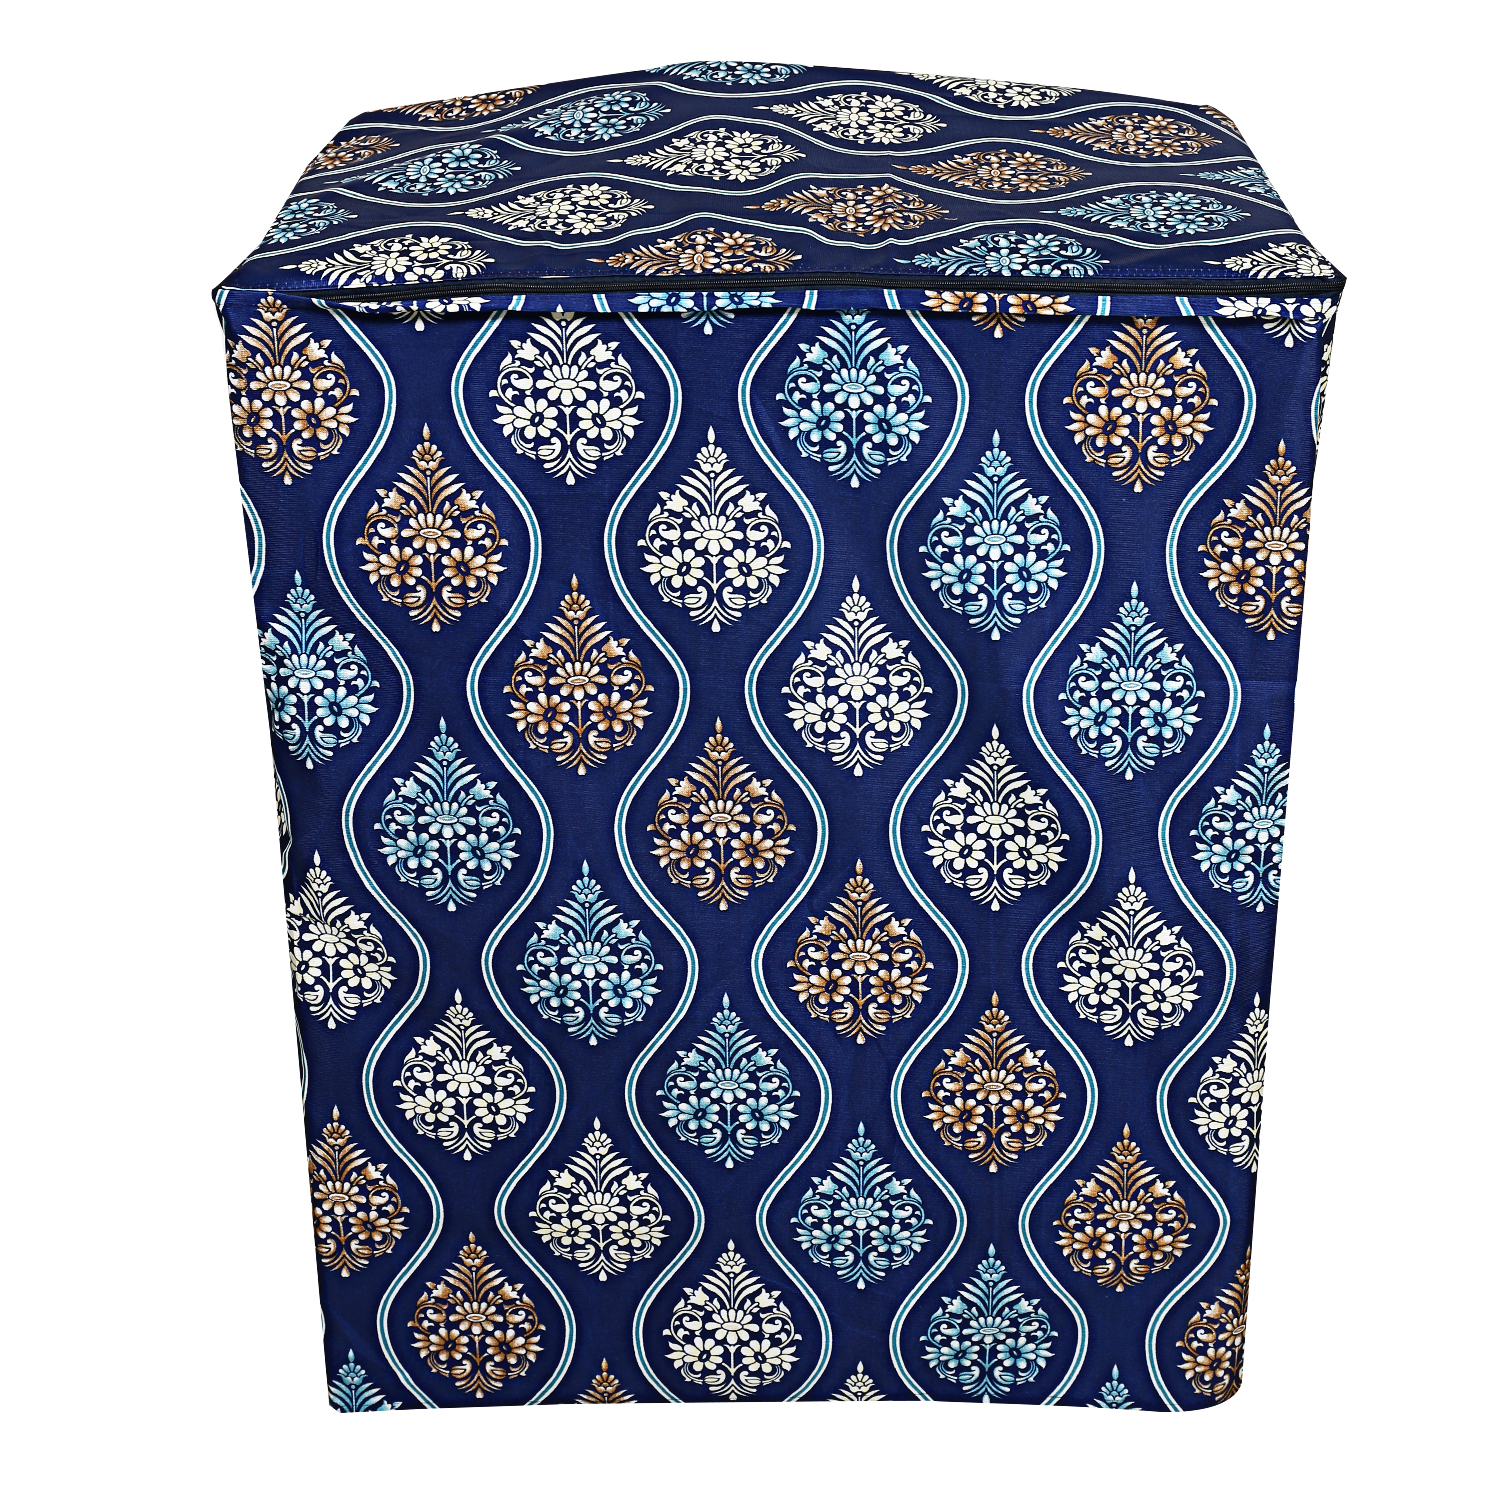 Kuber Industries Cotton Top Load Semi Automatic Washing Machine Cover (Blue)-CTKTC3879